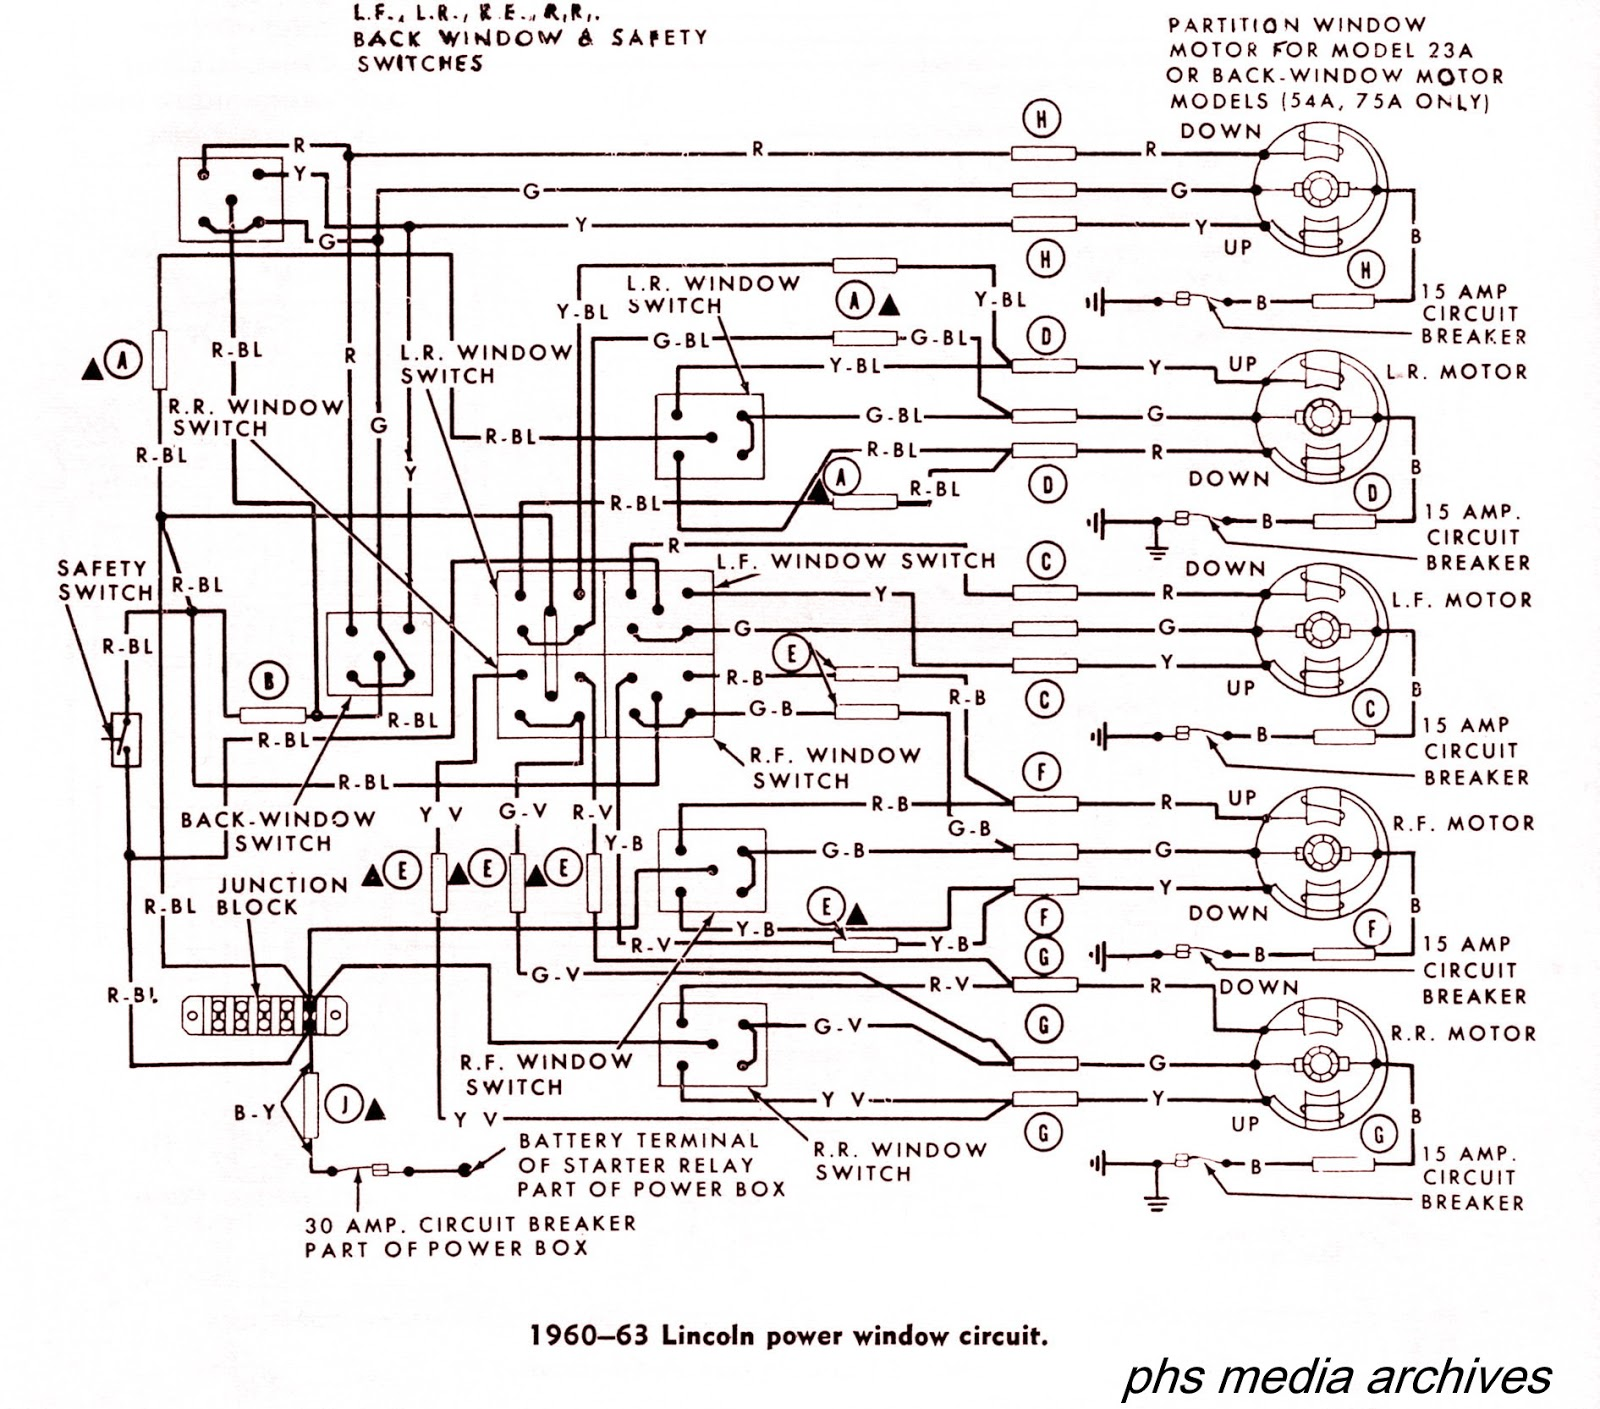 linc%2B%2Bb238 tech series 1960 1964 lincoln wiring diagrams phscollectorcarworld Simple Electrical Wiring Diagrams at fashall.co